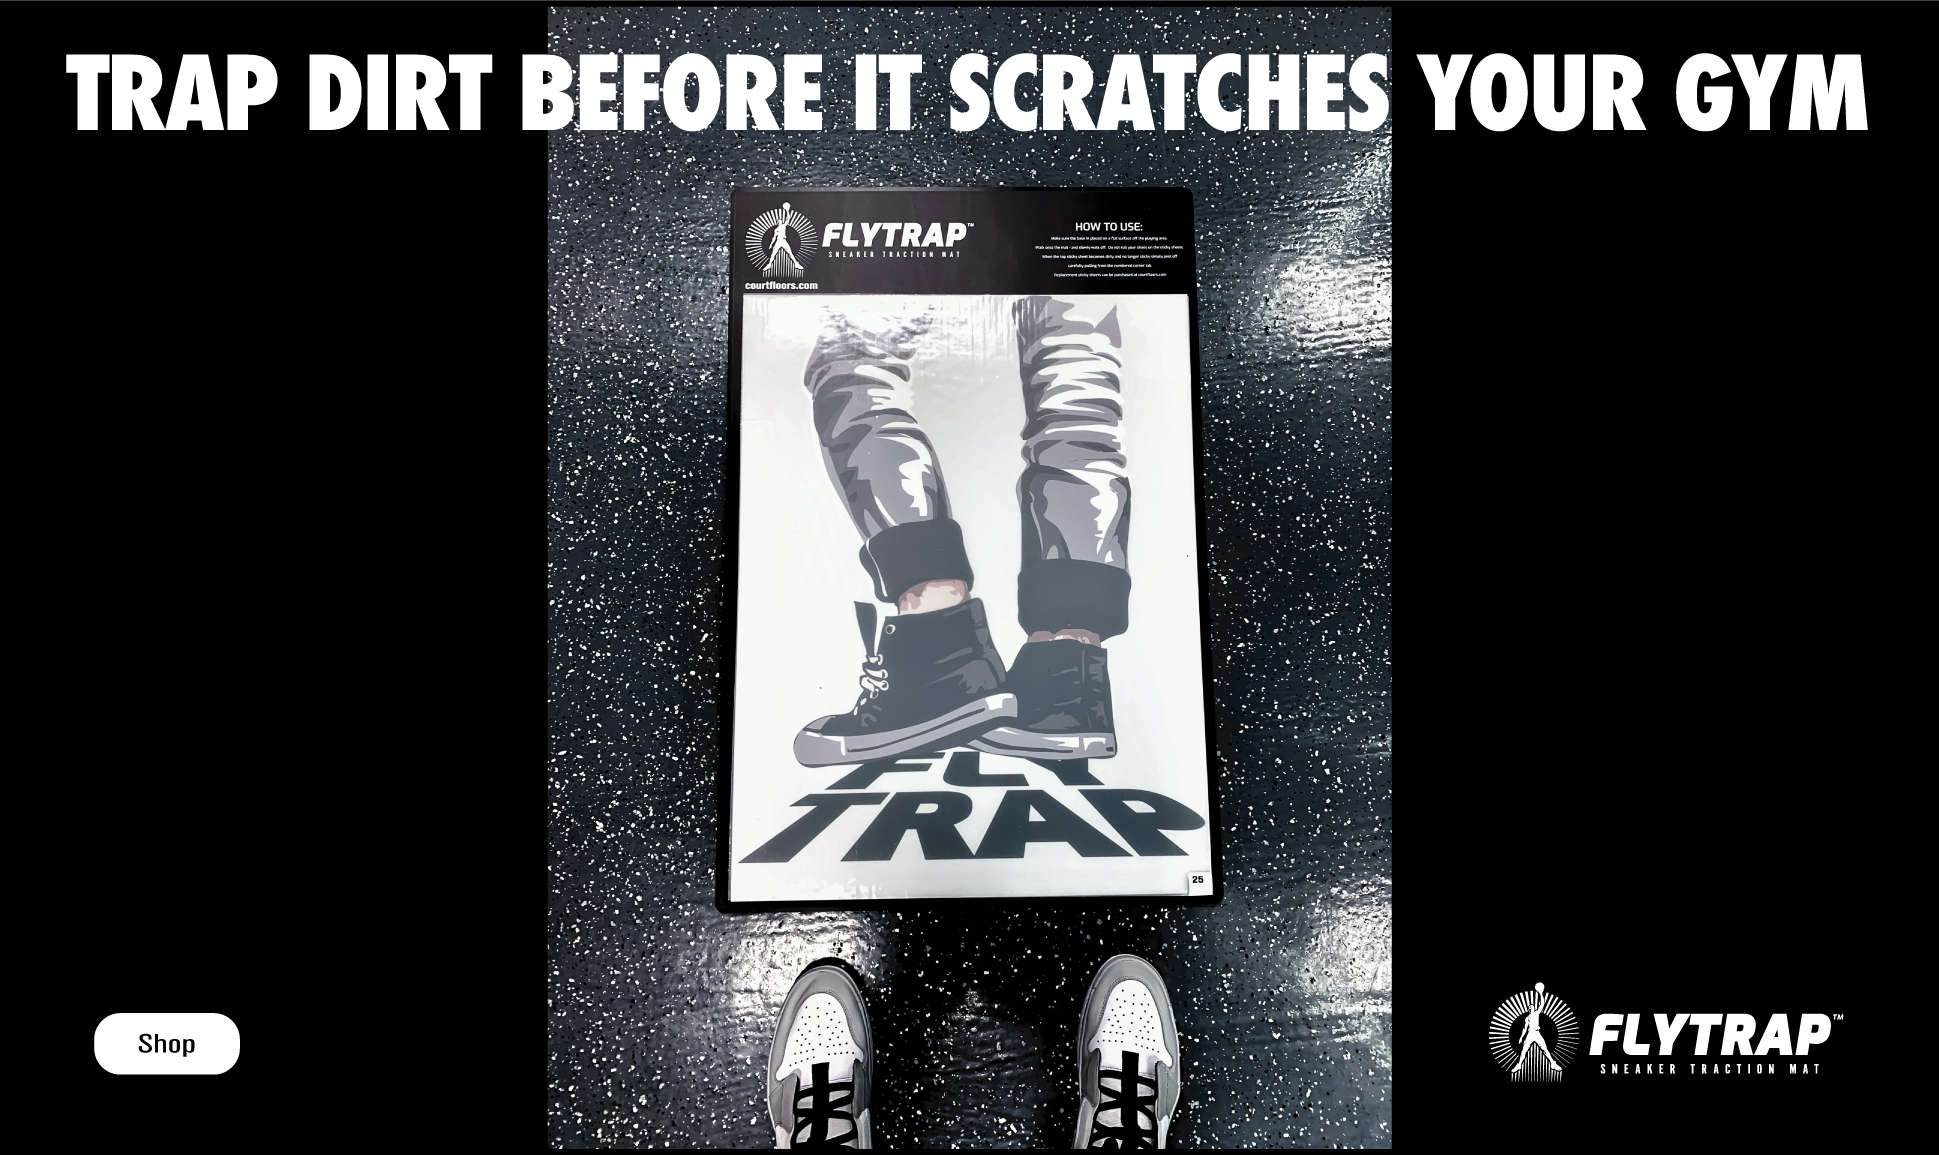 FLYTRAP SNEAKER TRACTION MAT - TRAP DIRT BEFORE IT SCRATCHES YOUR GYM FLOOR.